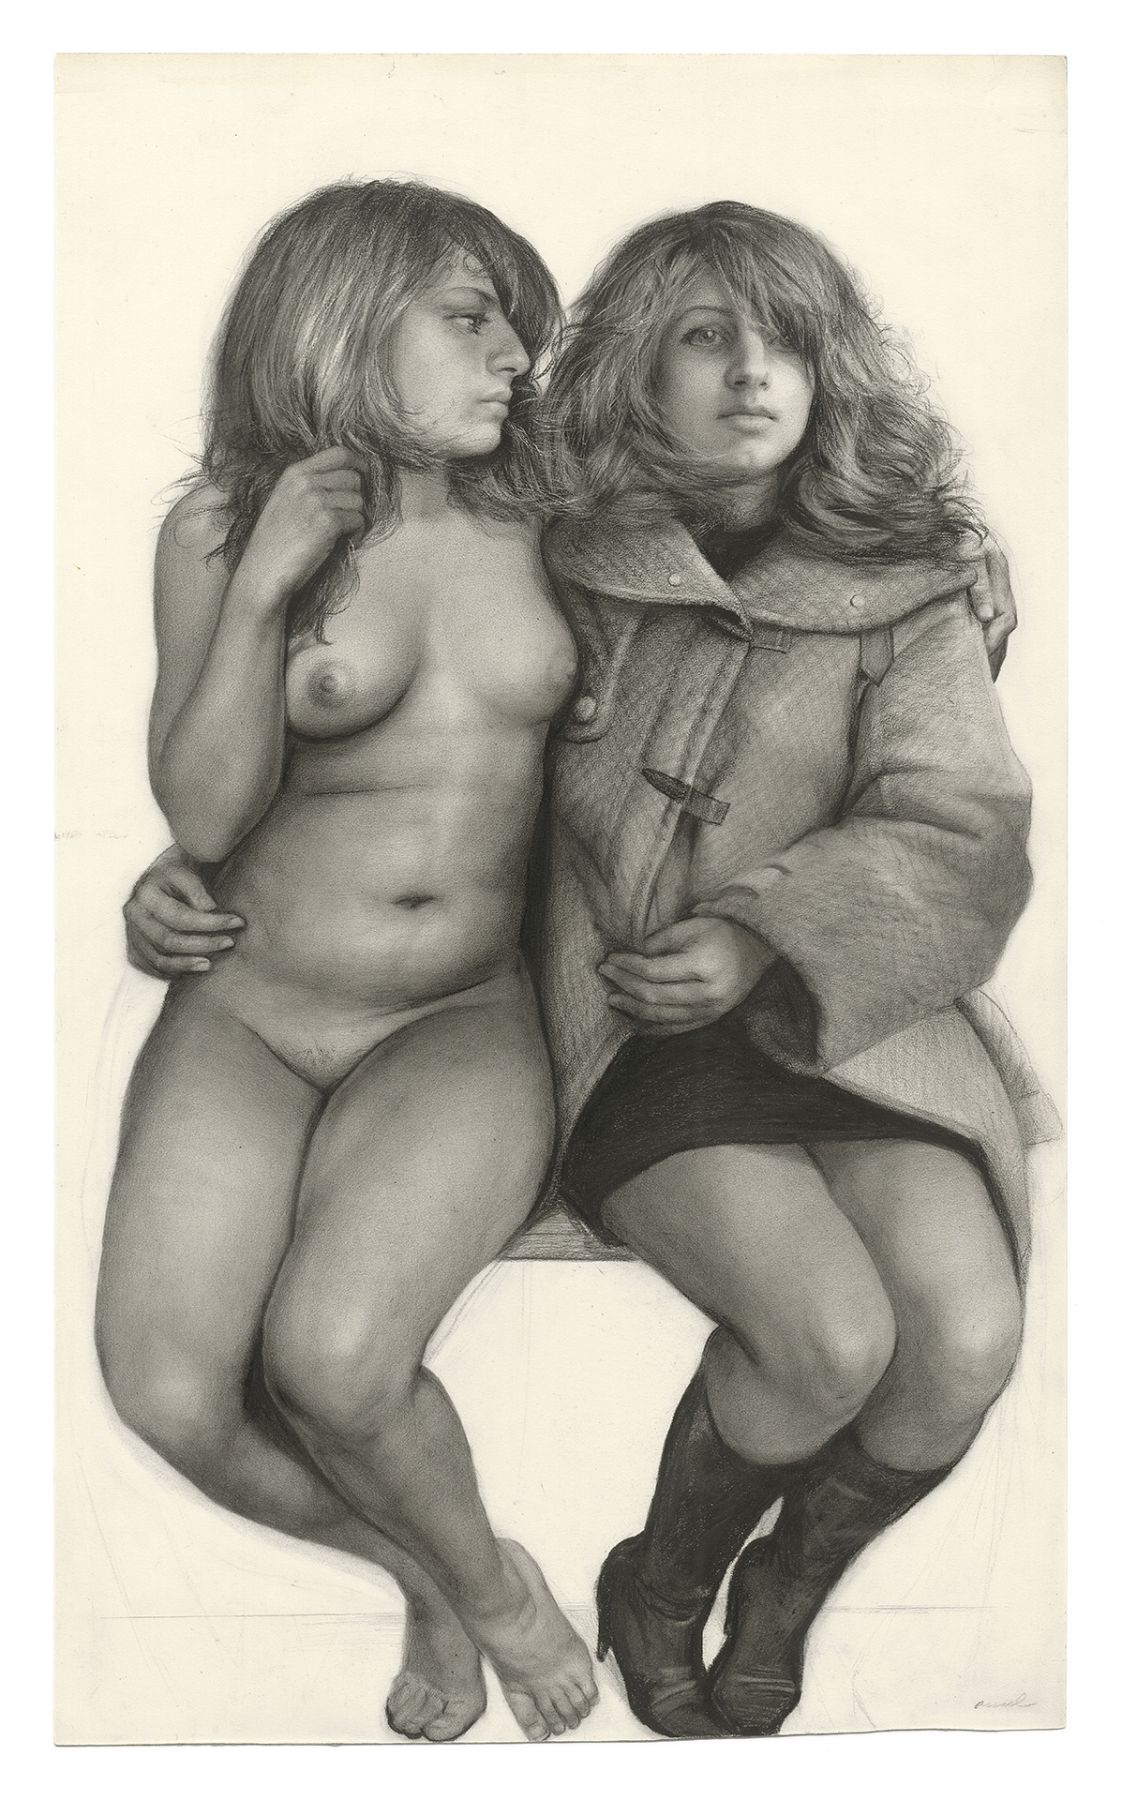 Steven Assael, Samantha Twice (SOLD), 2008, graphite and crayon on paper, 20 1/2 x 12 1/4 inches